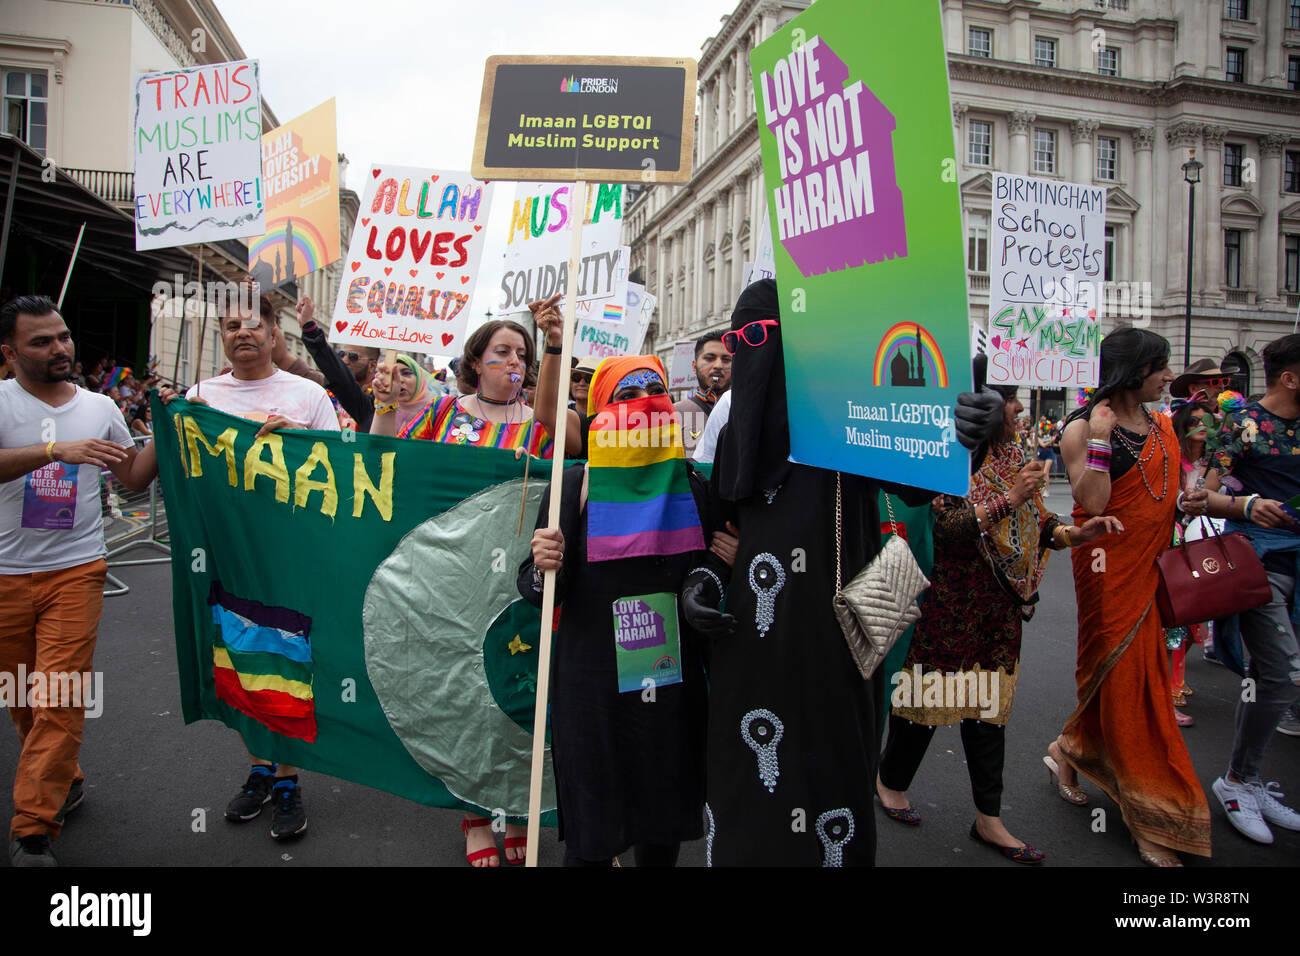 LONDON, UK - July 6th 2019: A muslim woman wearing a gay pride burka at the annual gay pride march in central London - Stock Image